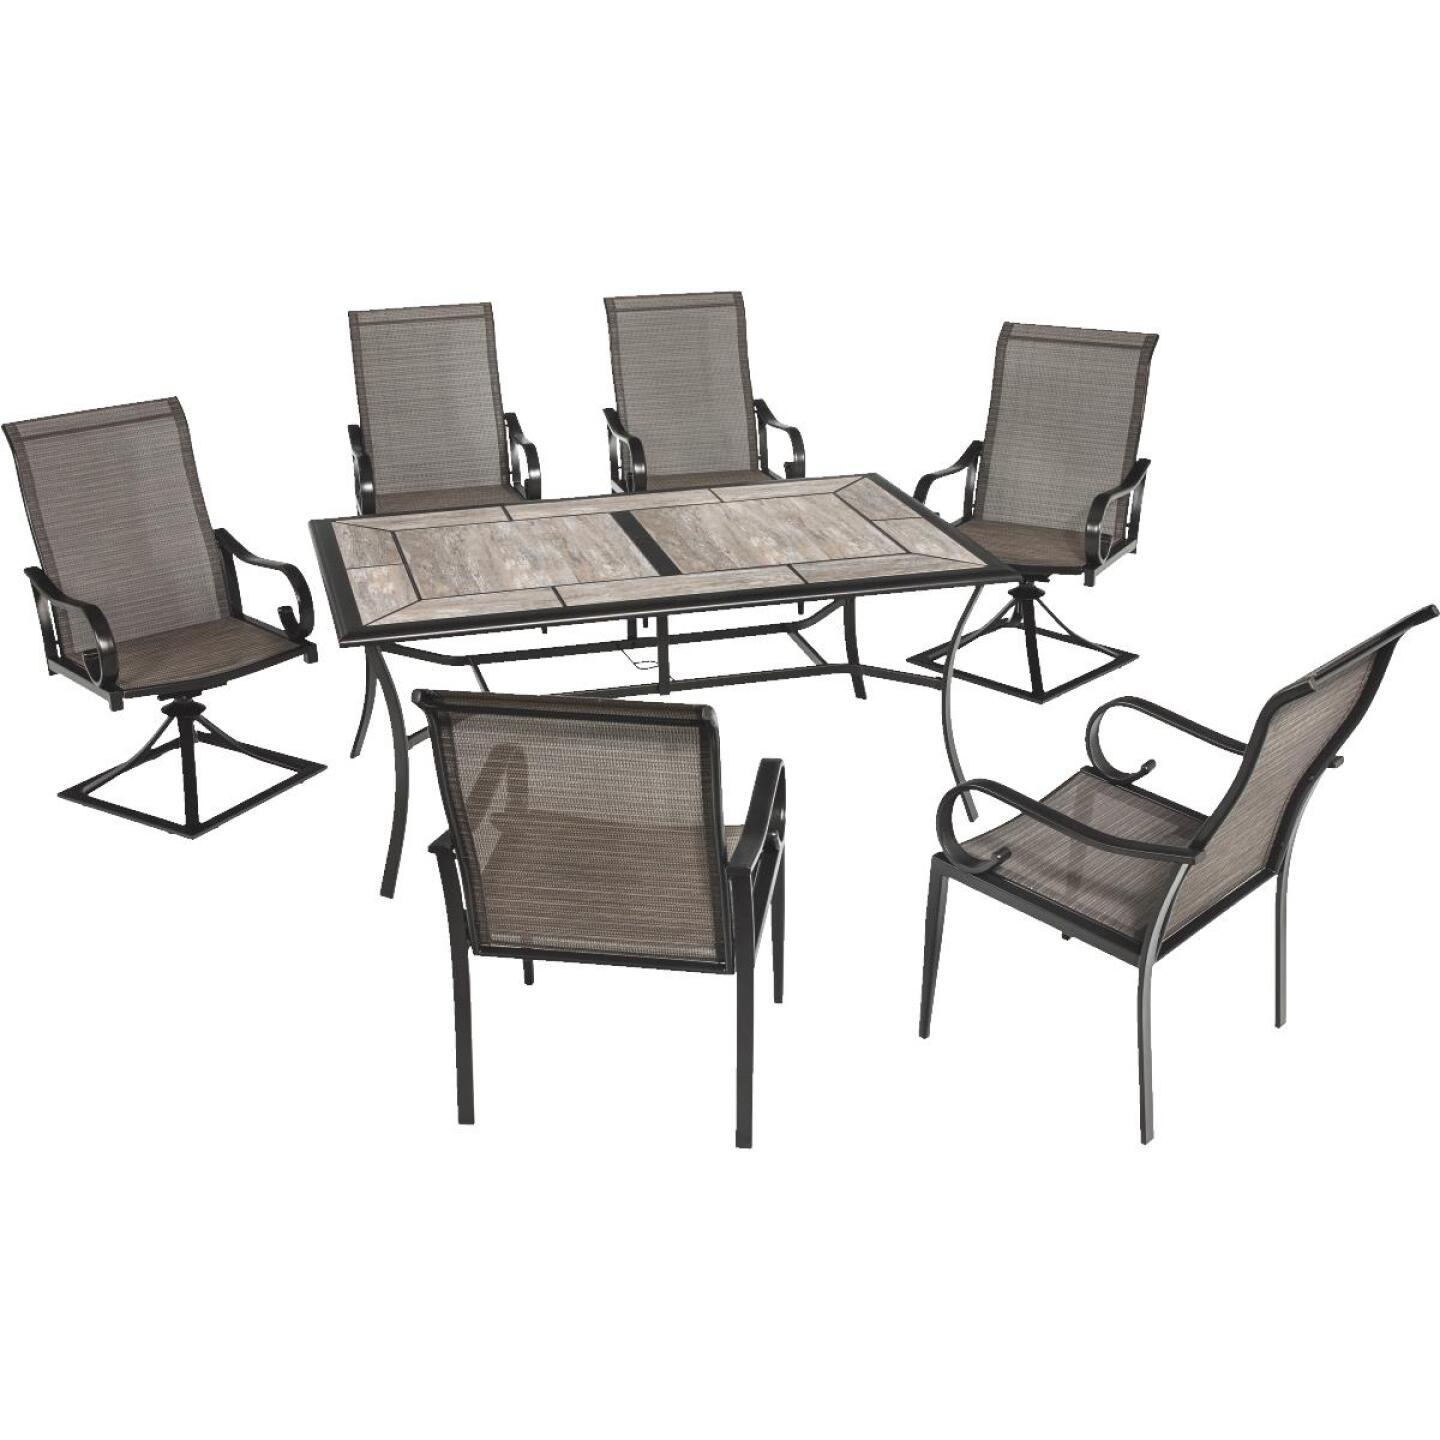 Outdoor Expressions Berkshire 7-Piece Dining Set Image 290